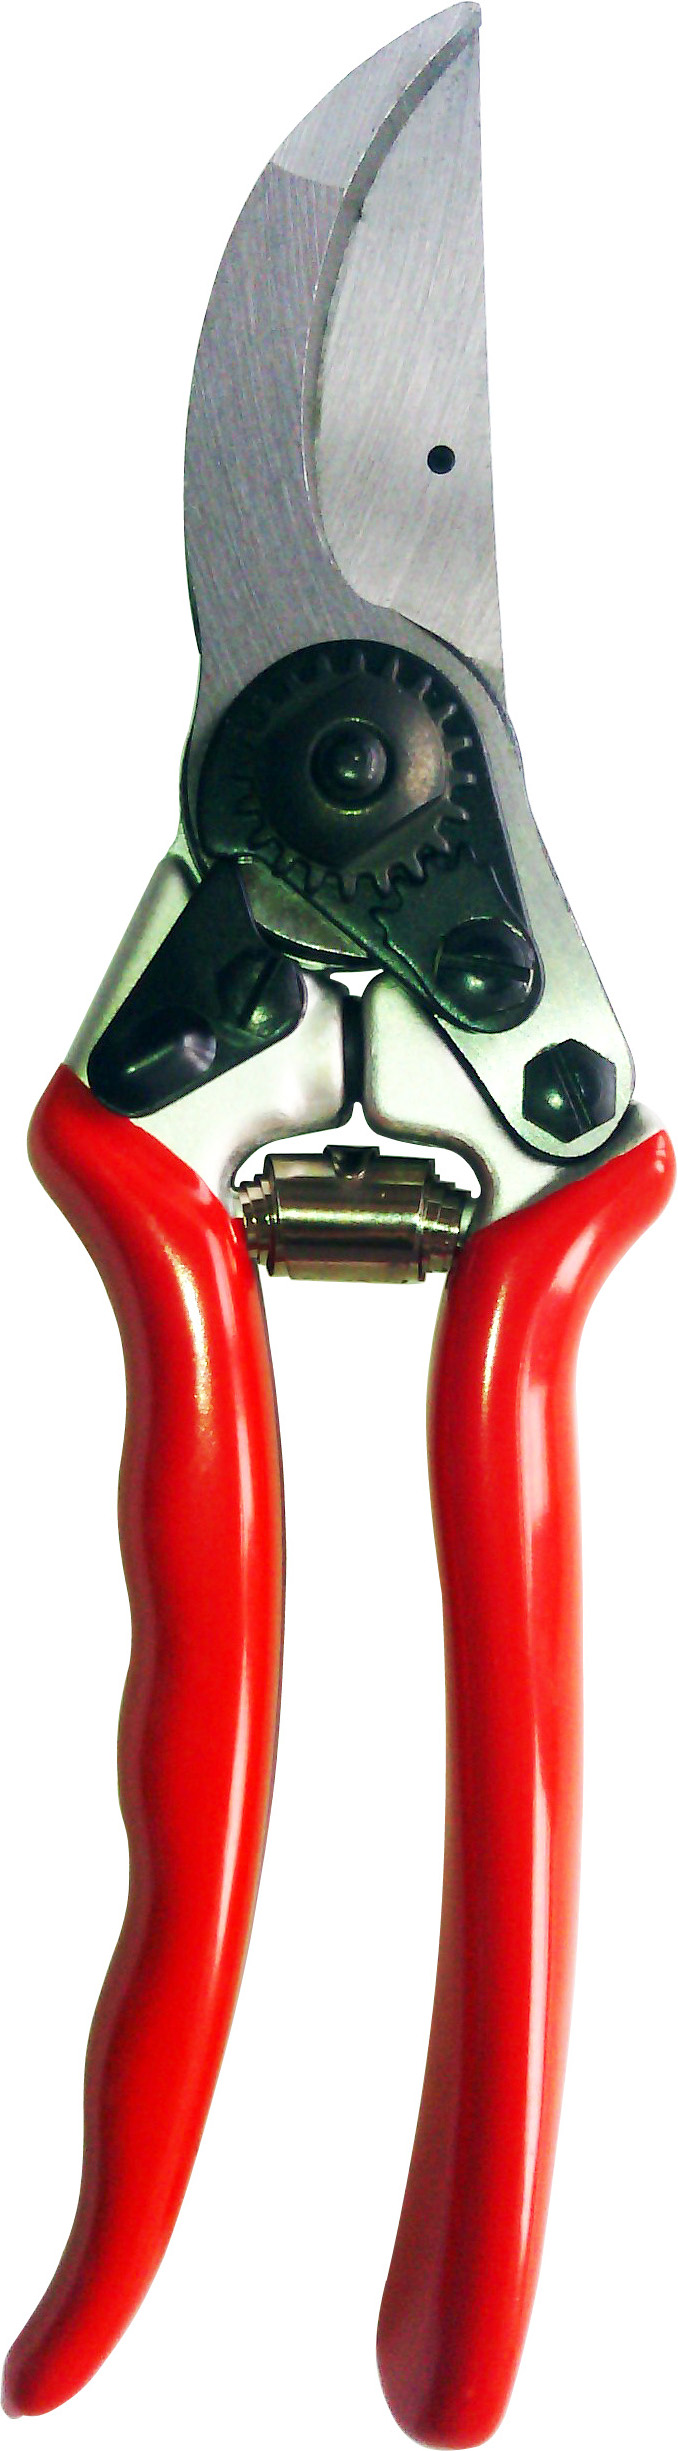 Zenport Pruner QZ411 Narrow Head Professional, 1-Inch Cut, 8.25-Inch Long